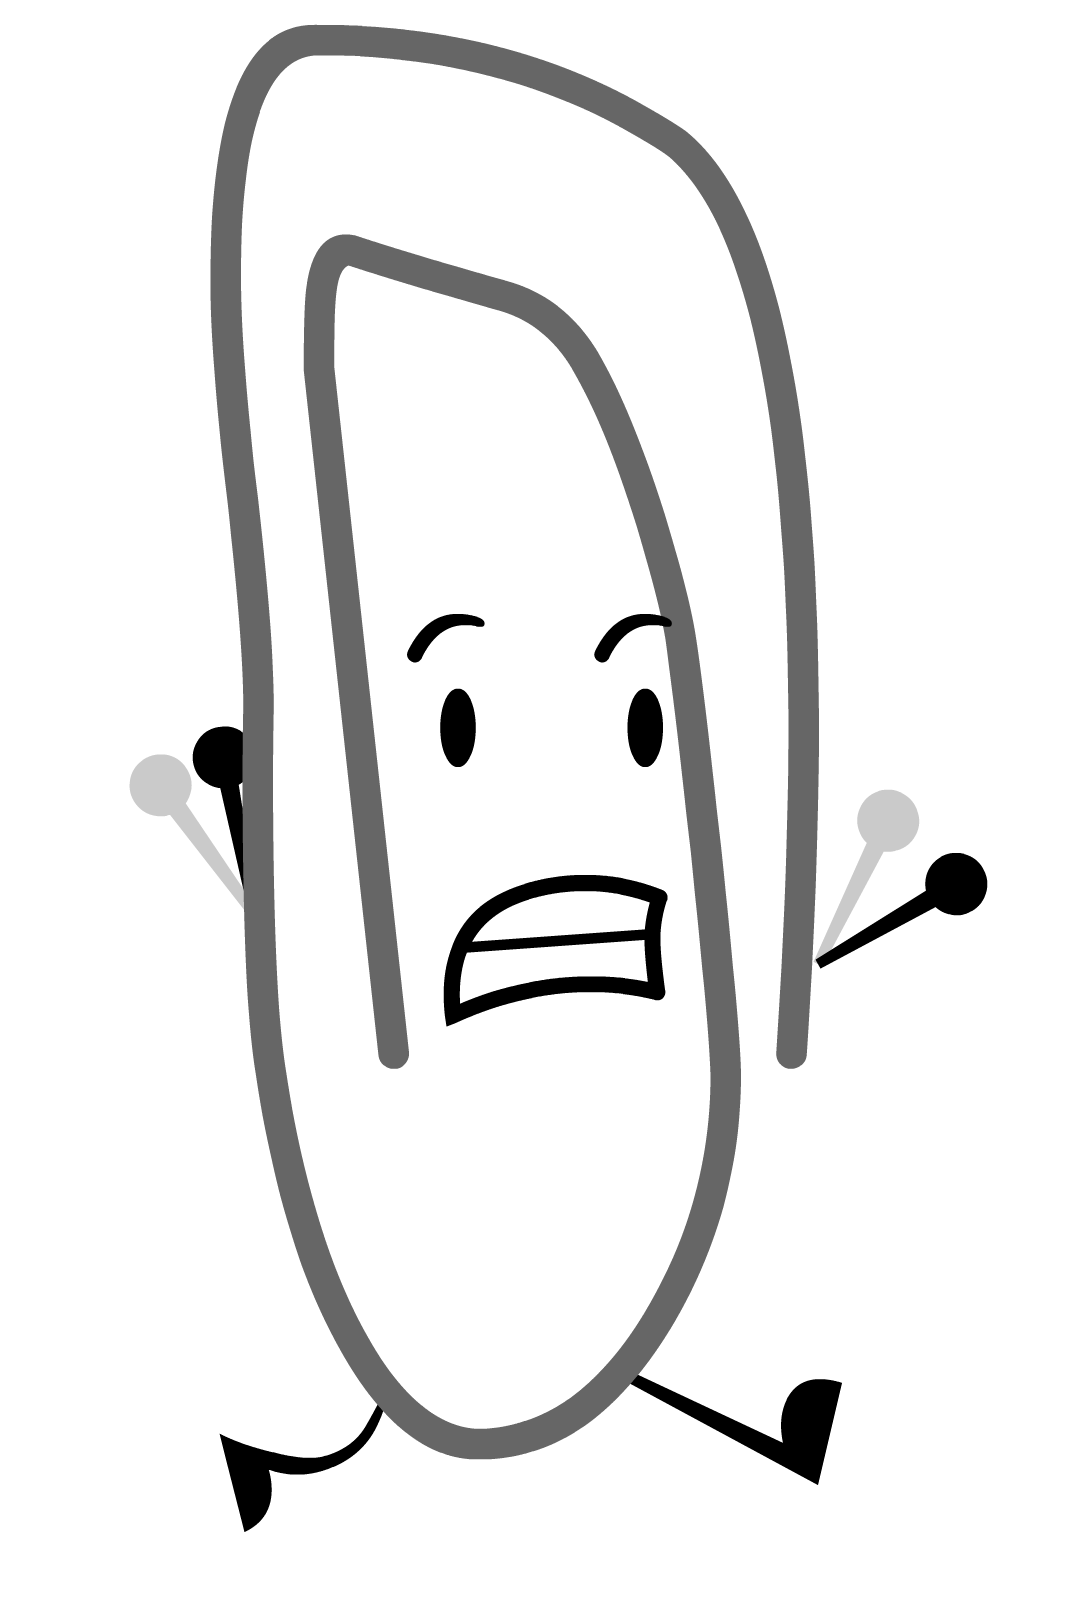 Dreaming clipart bubble head. Image clippy bfdi png